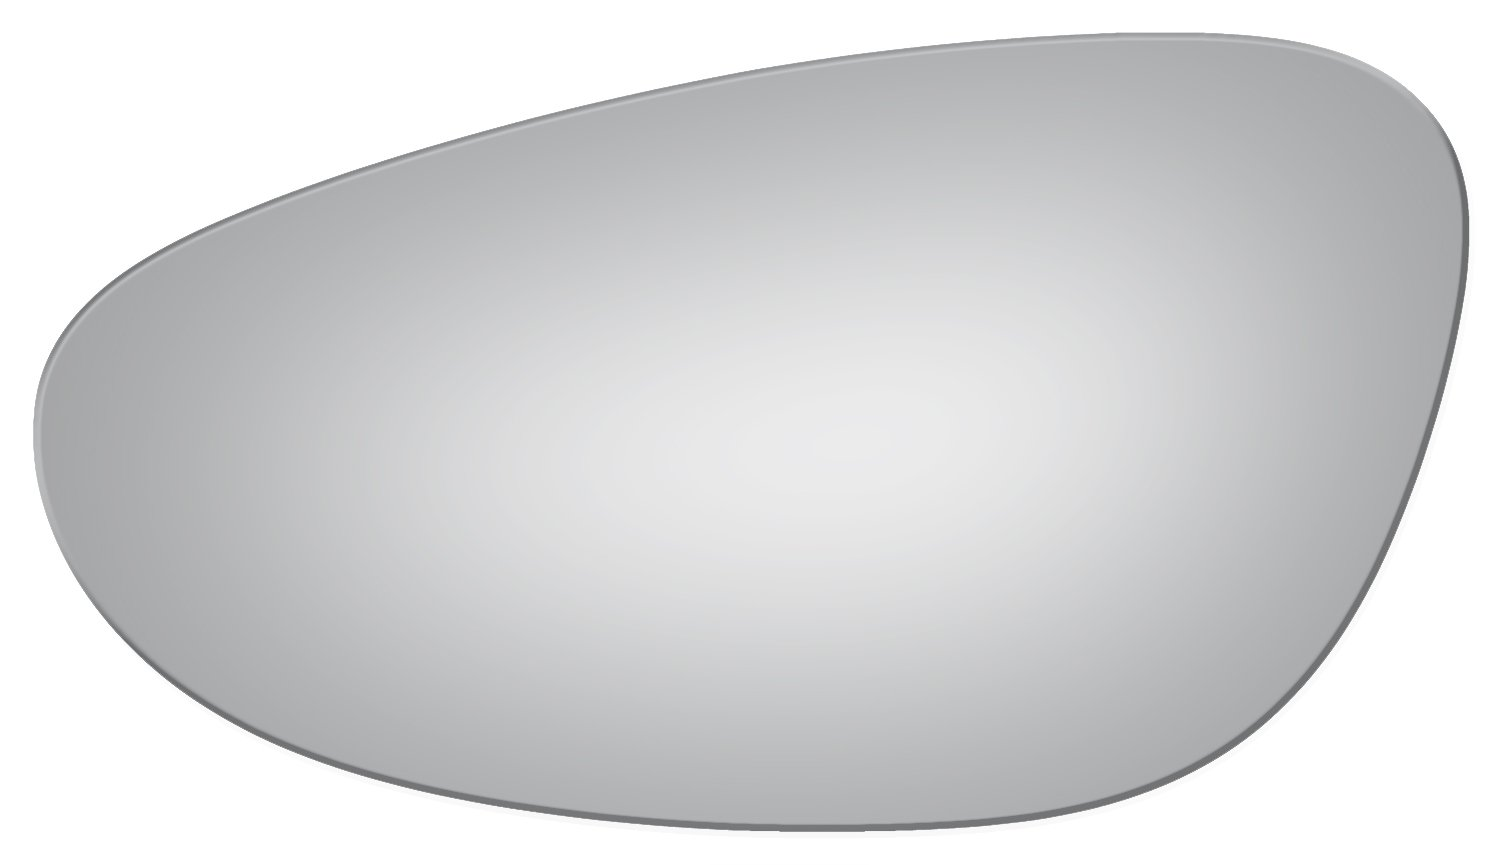 Burco 2826 Flat Driver Side Replacement Mirror Glass for Porsche 911, Boxster (1997, 1998, 1999, 2000, 2001, 2002, 2003, 2004, 2005)